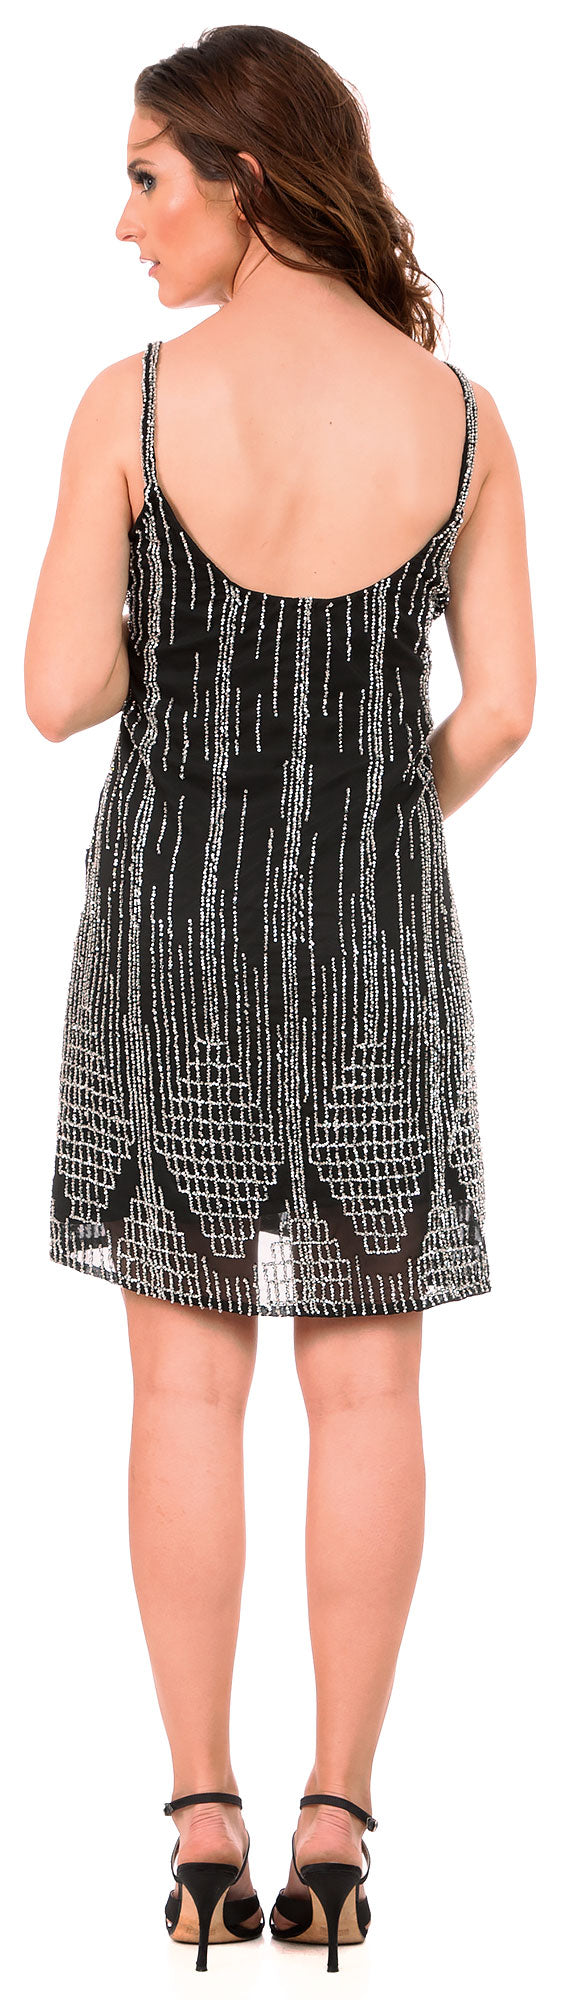 Image of Short Fitted Beaded Short Shift Homecoming Party Dress back in Black/Silver